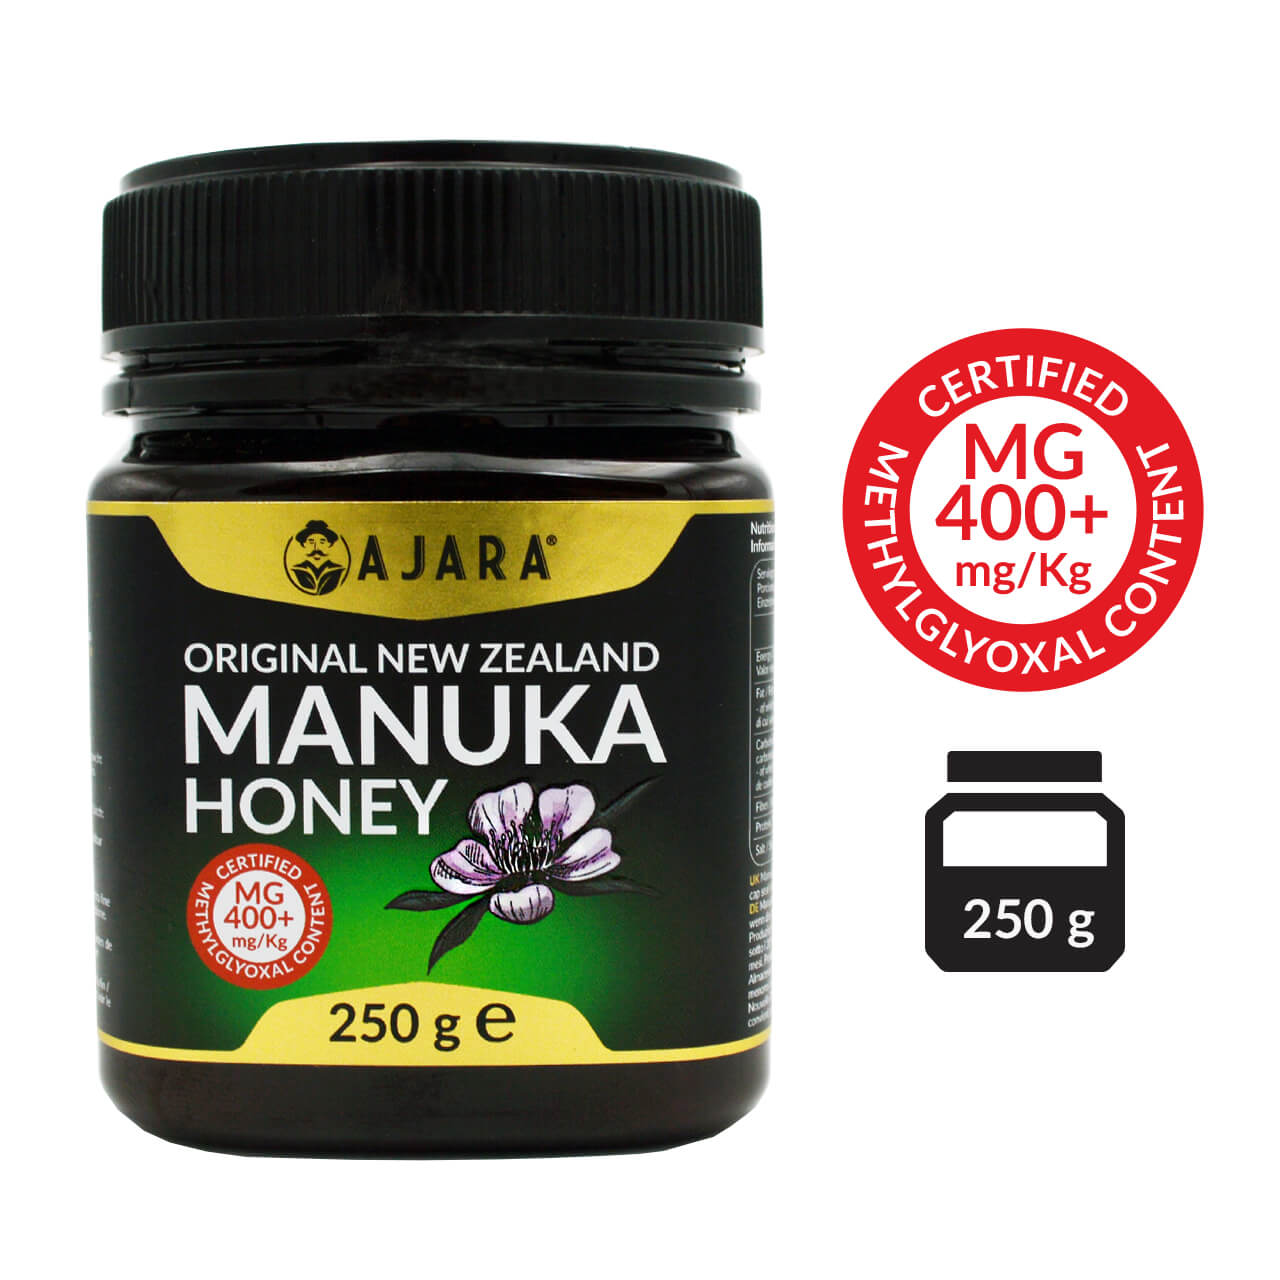 Manuka honey MG 400+ 250g